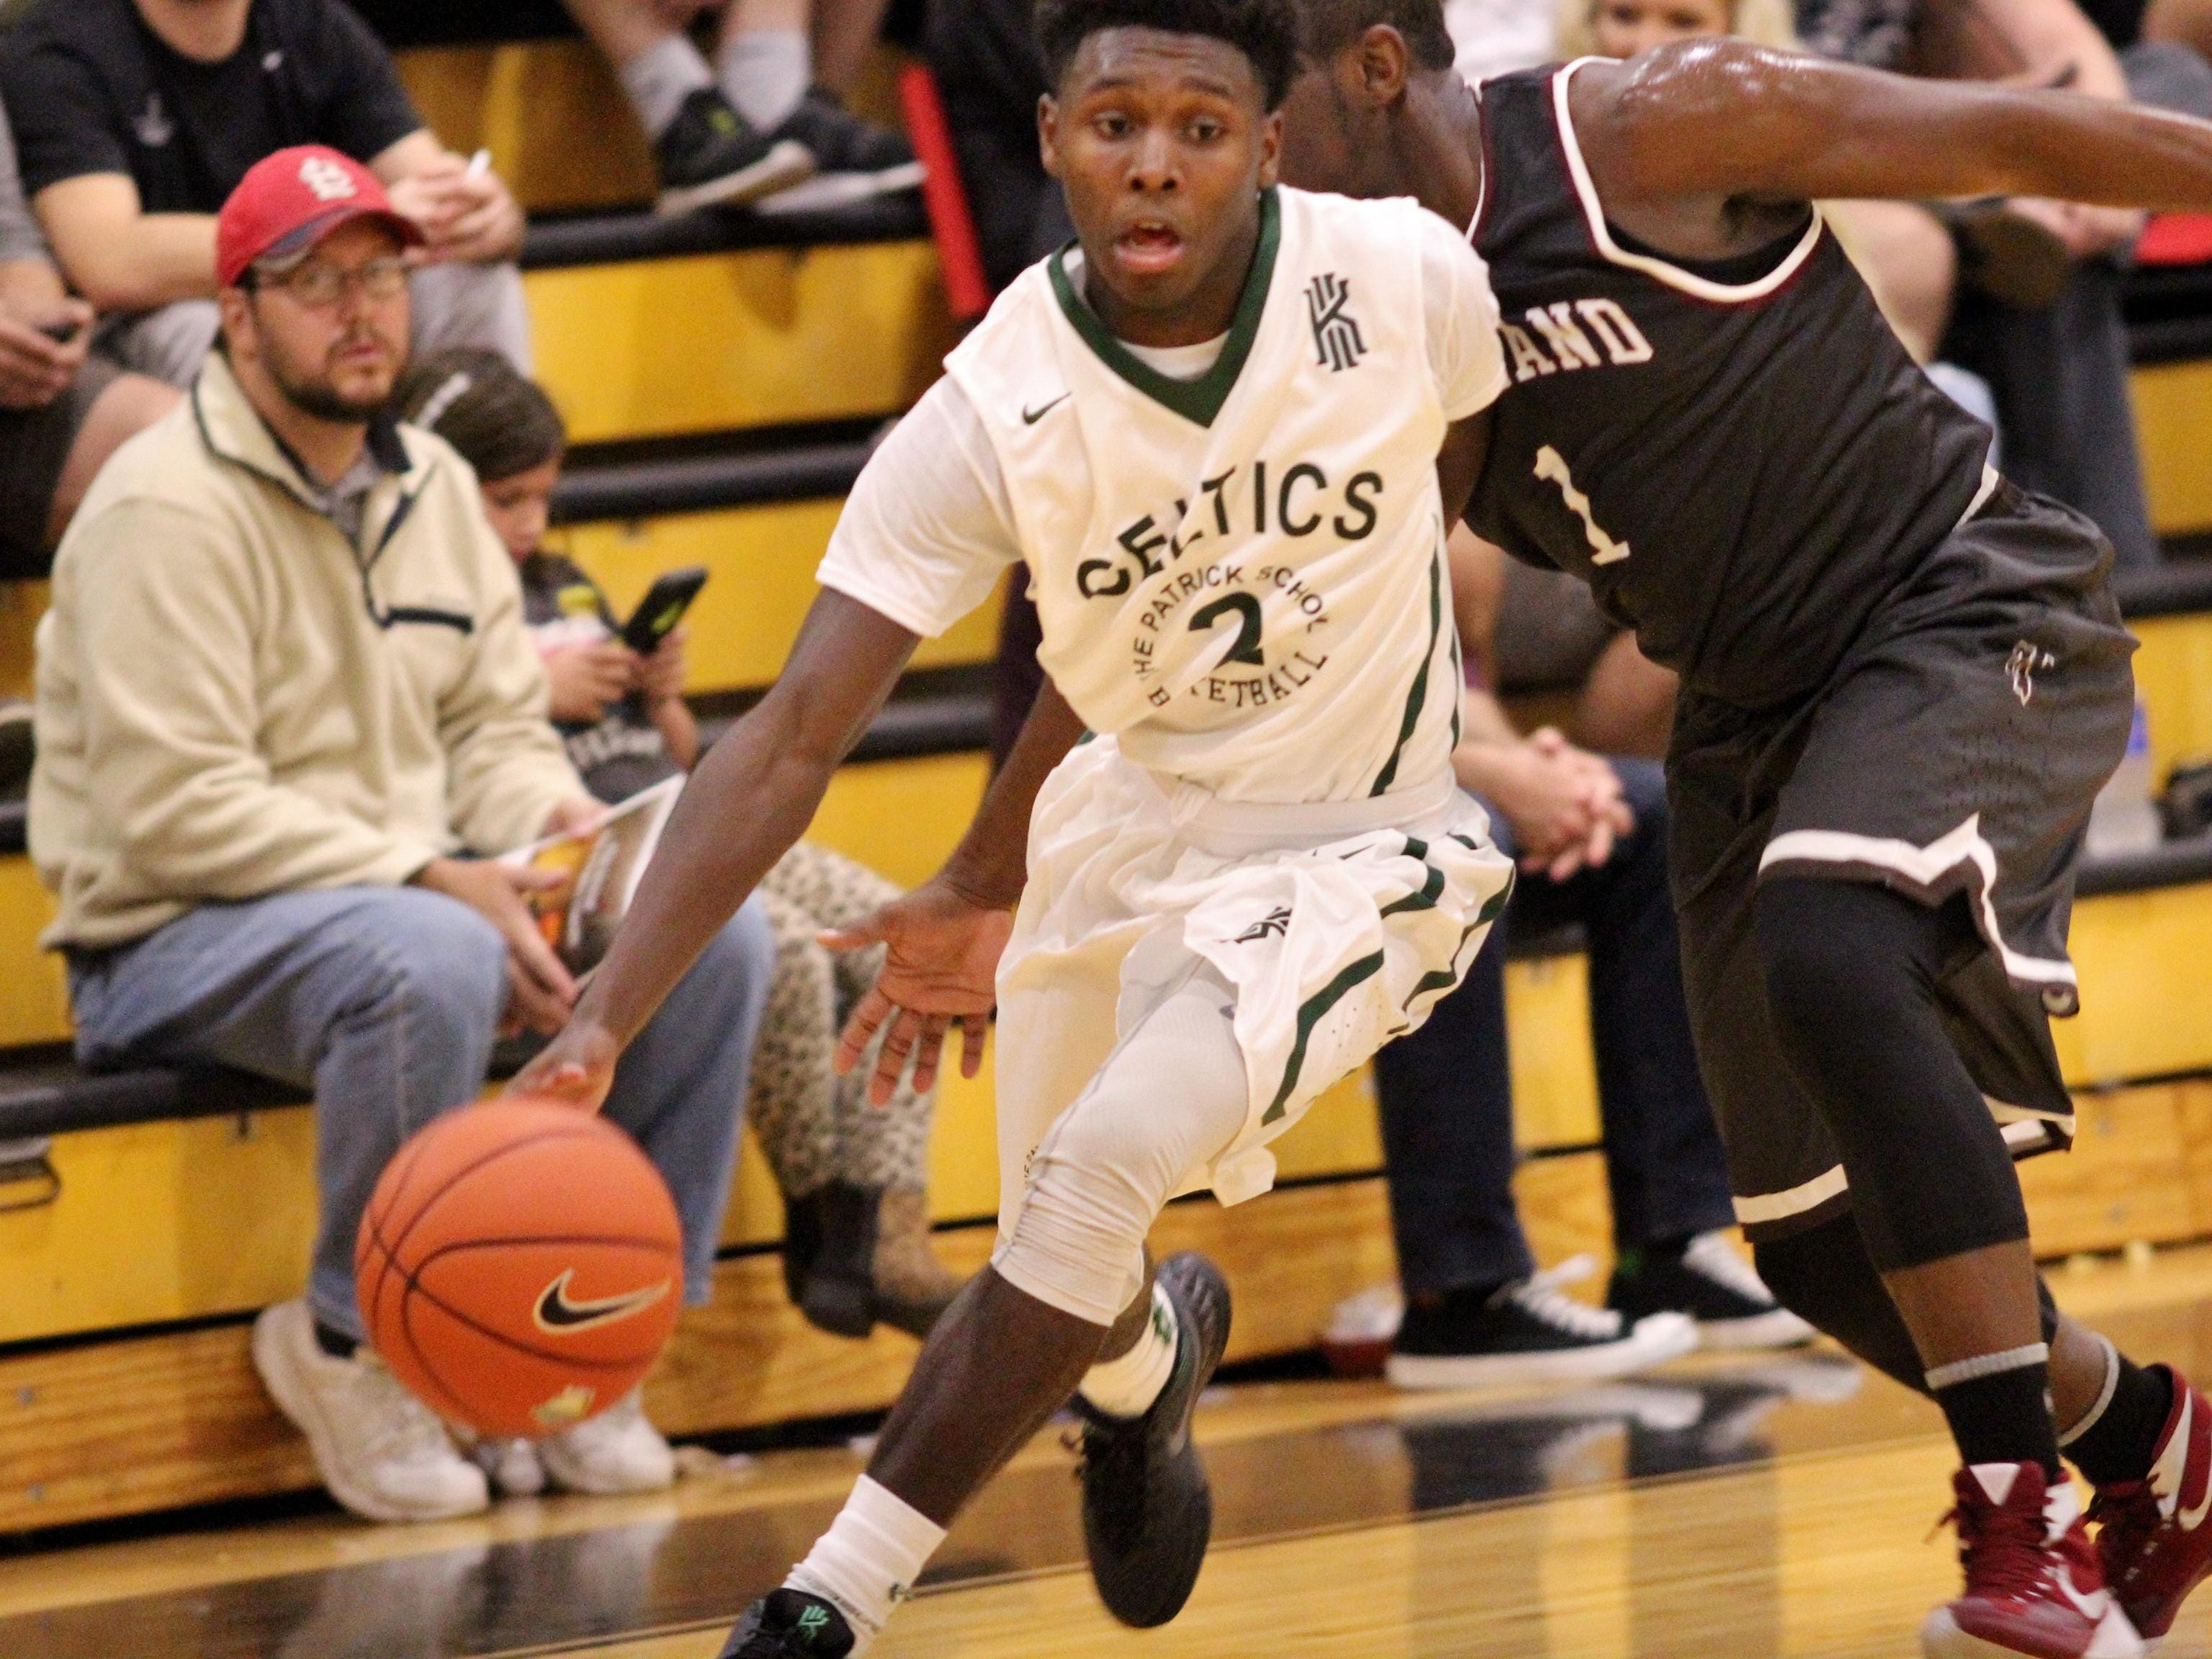 Jordan Walker of Elizabeth (New Jersey) Patrick School dribbles past Miami Norland's Kennith Rolle in the 2015 City of Palms Classic